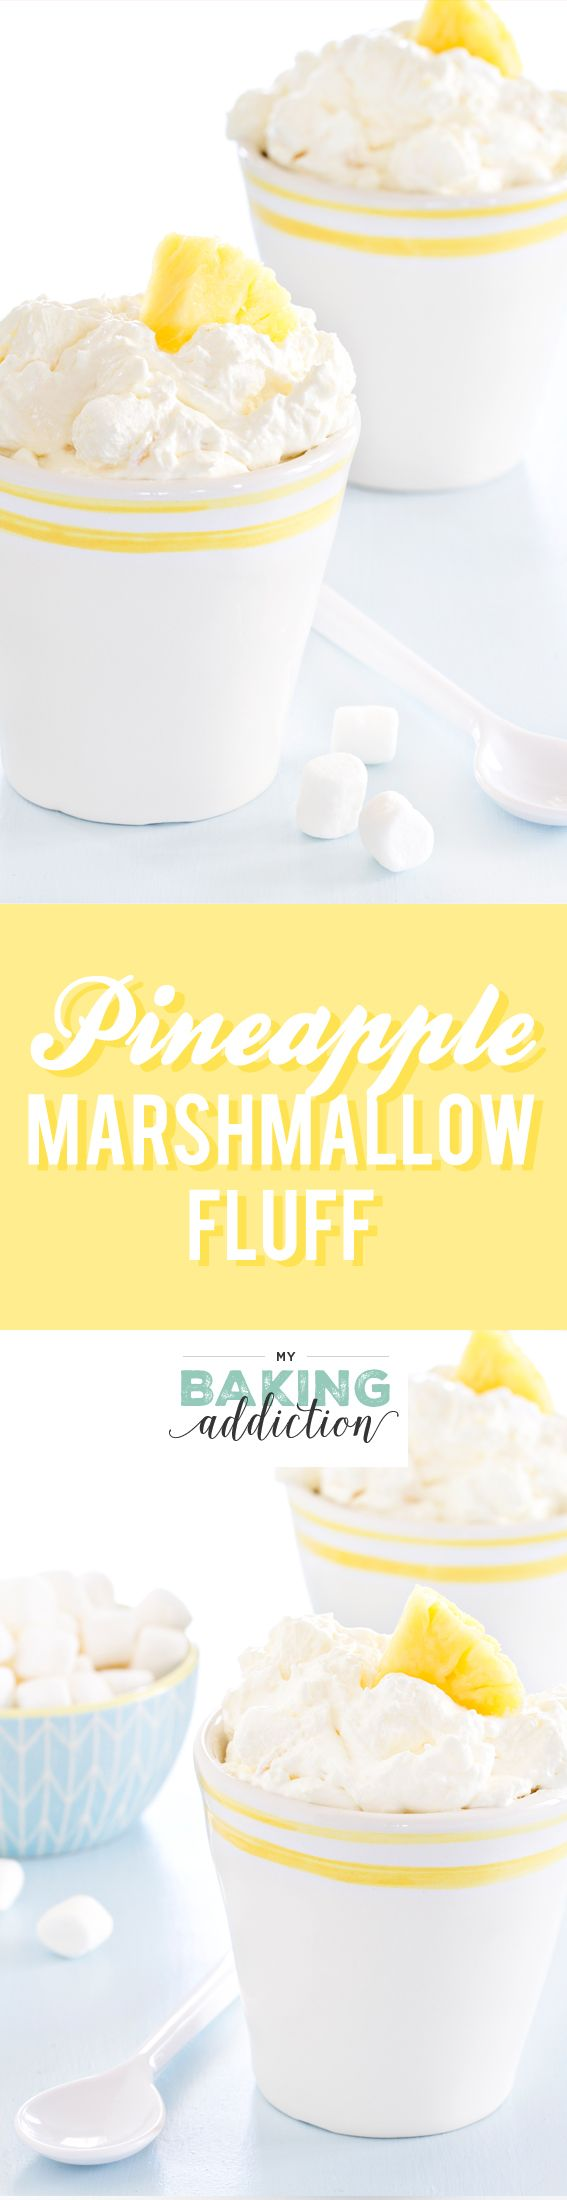 Pineapple Fluff is made with pineapple Jell-o mix and crushed pineapple. So easy and amazing! My family raves about this every single time I make it!